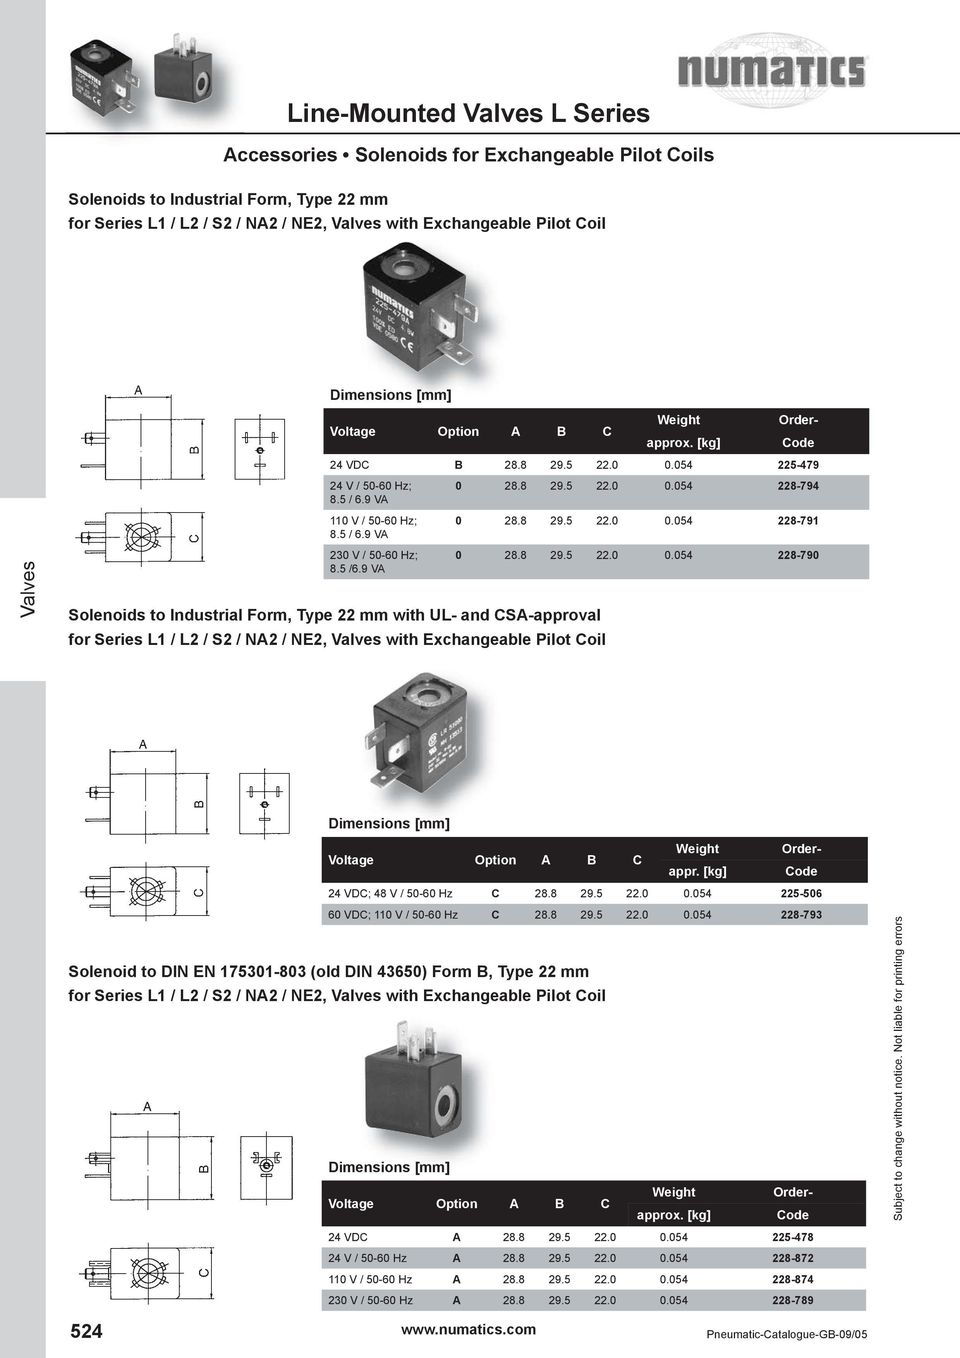 9 VA Solenoids to Industrial Form, Type 22 mm with UL- and CSA-approval for Series L1 / L2 / S2 / NA2 / NE2, with Exchangeable Pilot Coil 0 28.8 29.5 22.0 0.054 228-791 0 28.8 29.5 22.0 0.054 228-790 Option A B C appr.